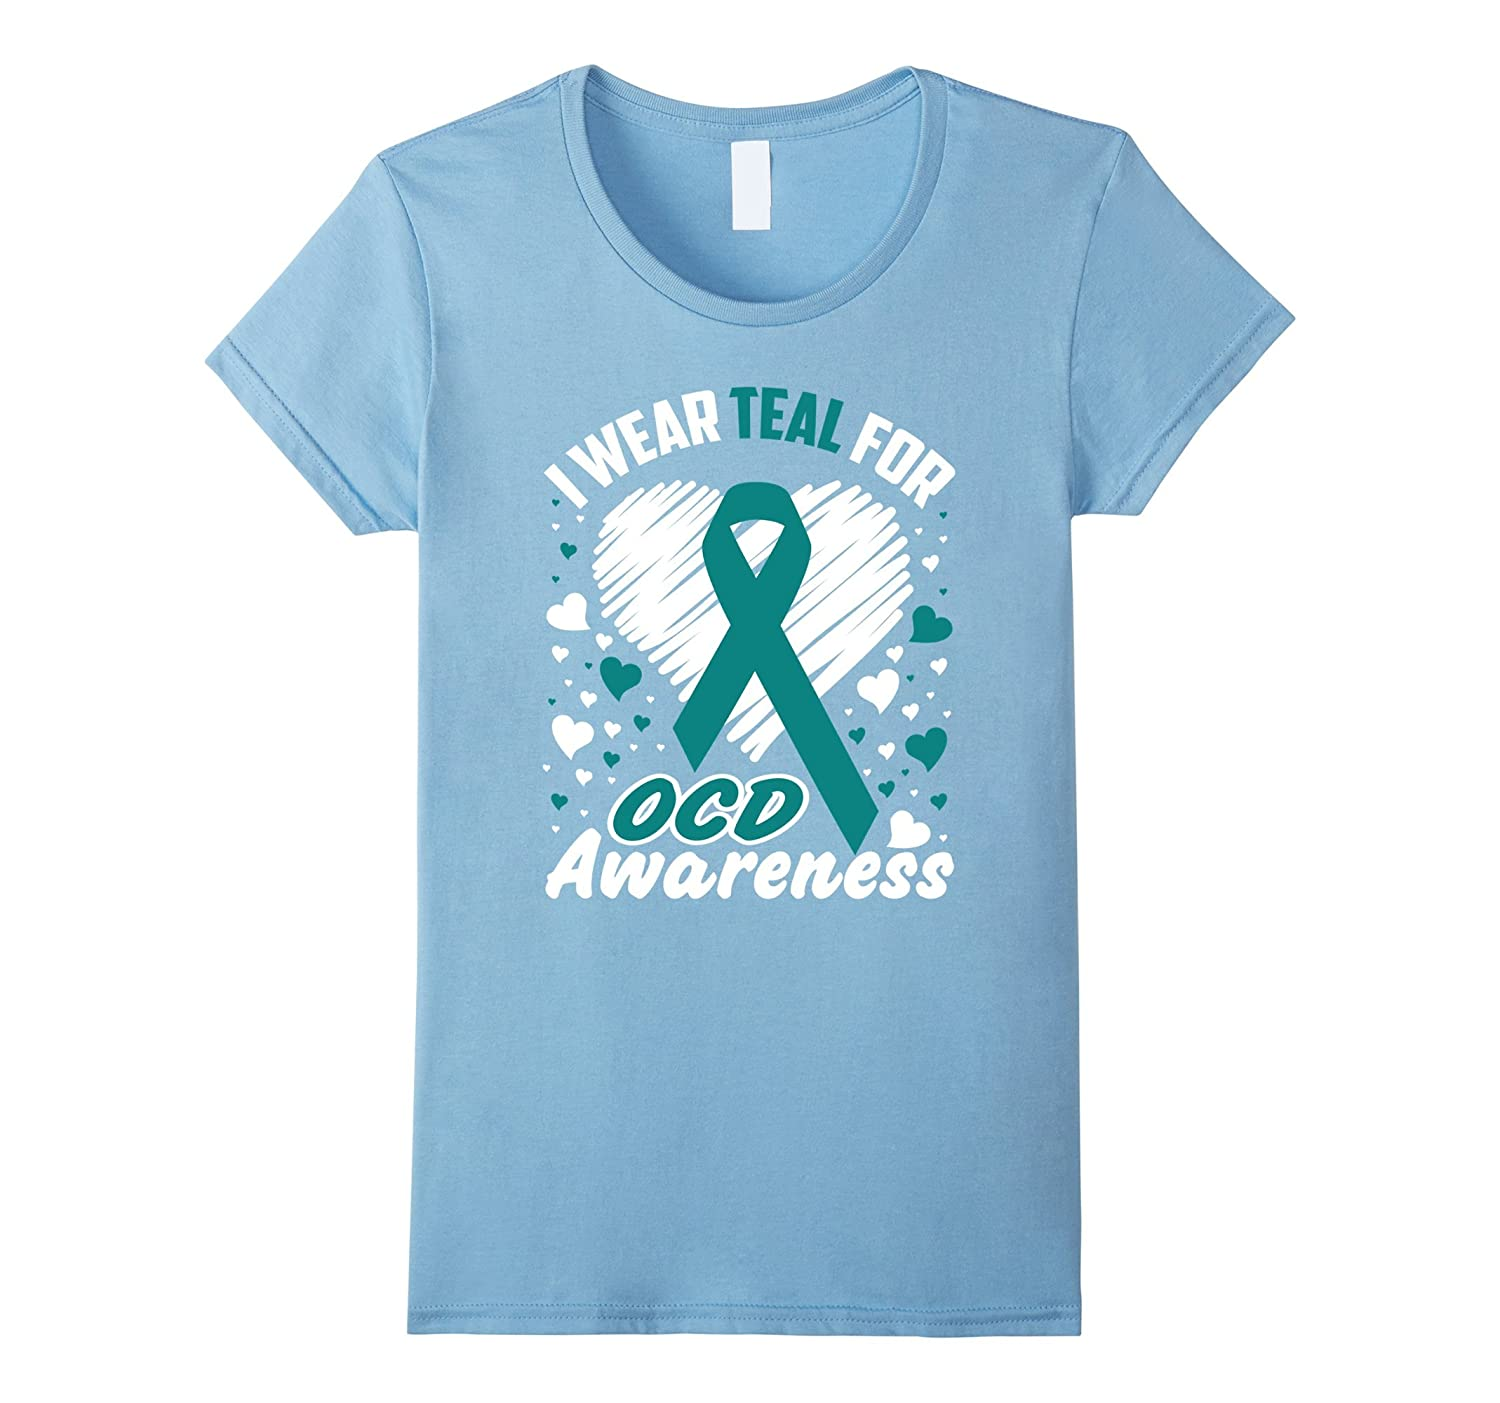 Amazon.com: I Wear Teal For OCD Awareness T-Shirt Obsessive ...